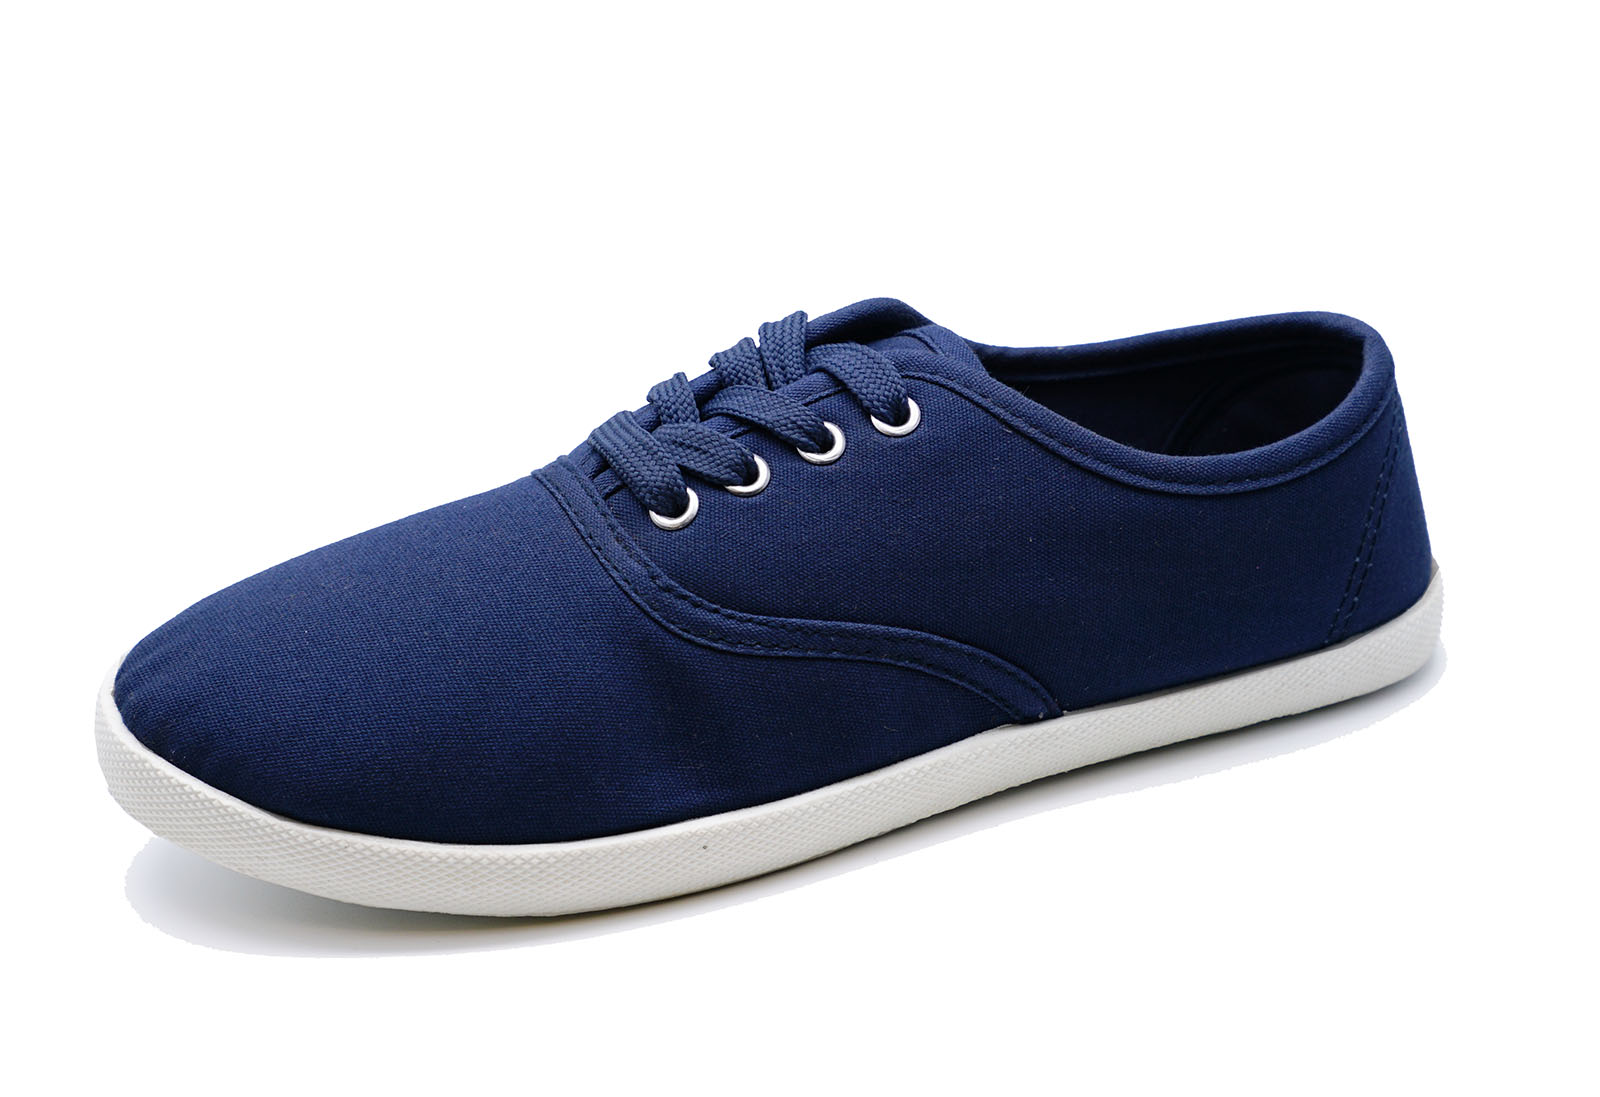 LADIES NAVY LACE-UP CANVAS FLAT TRAINER